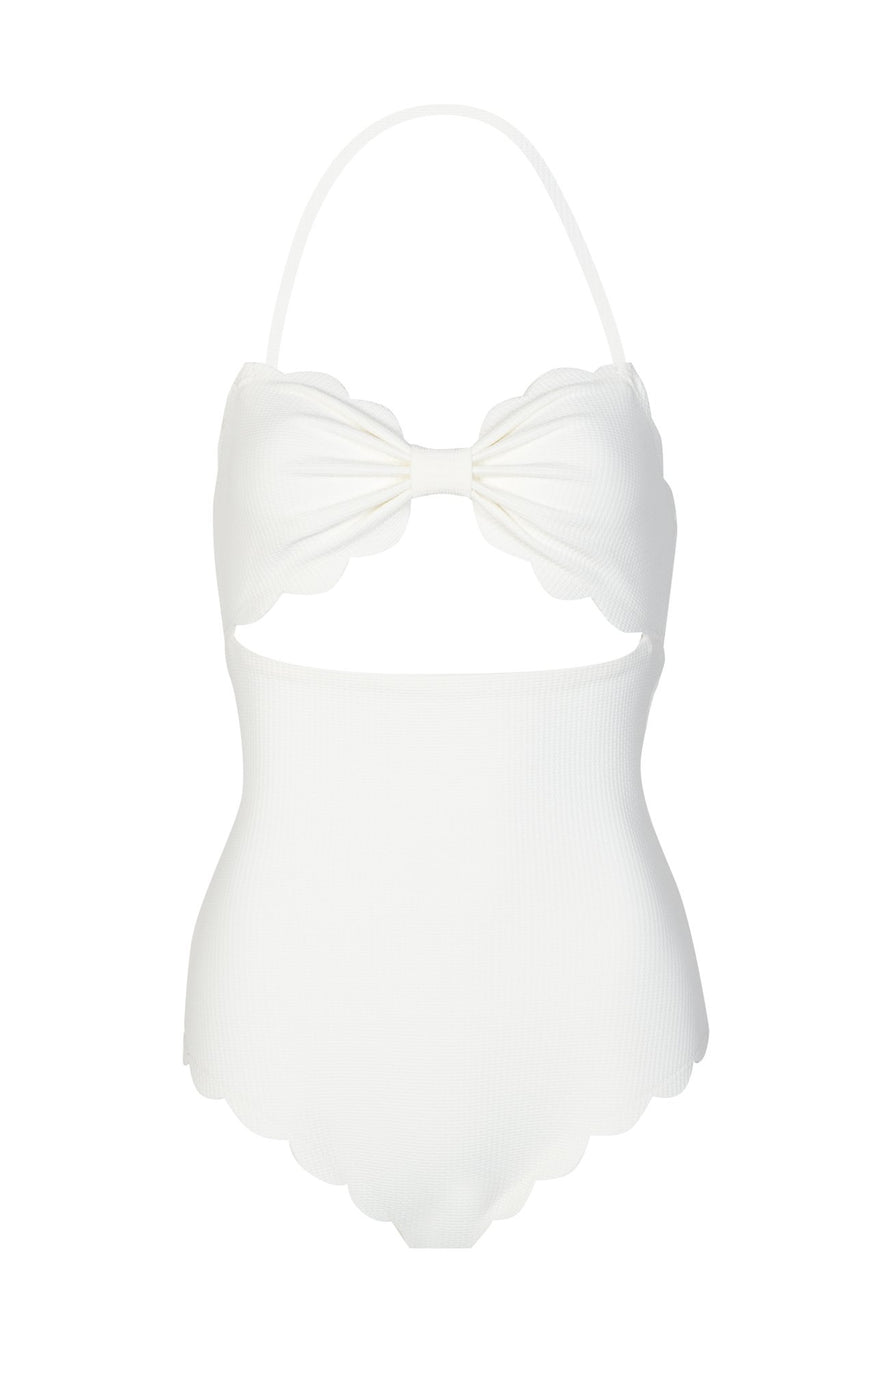 Antibes Maillot in Coconut